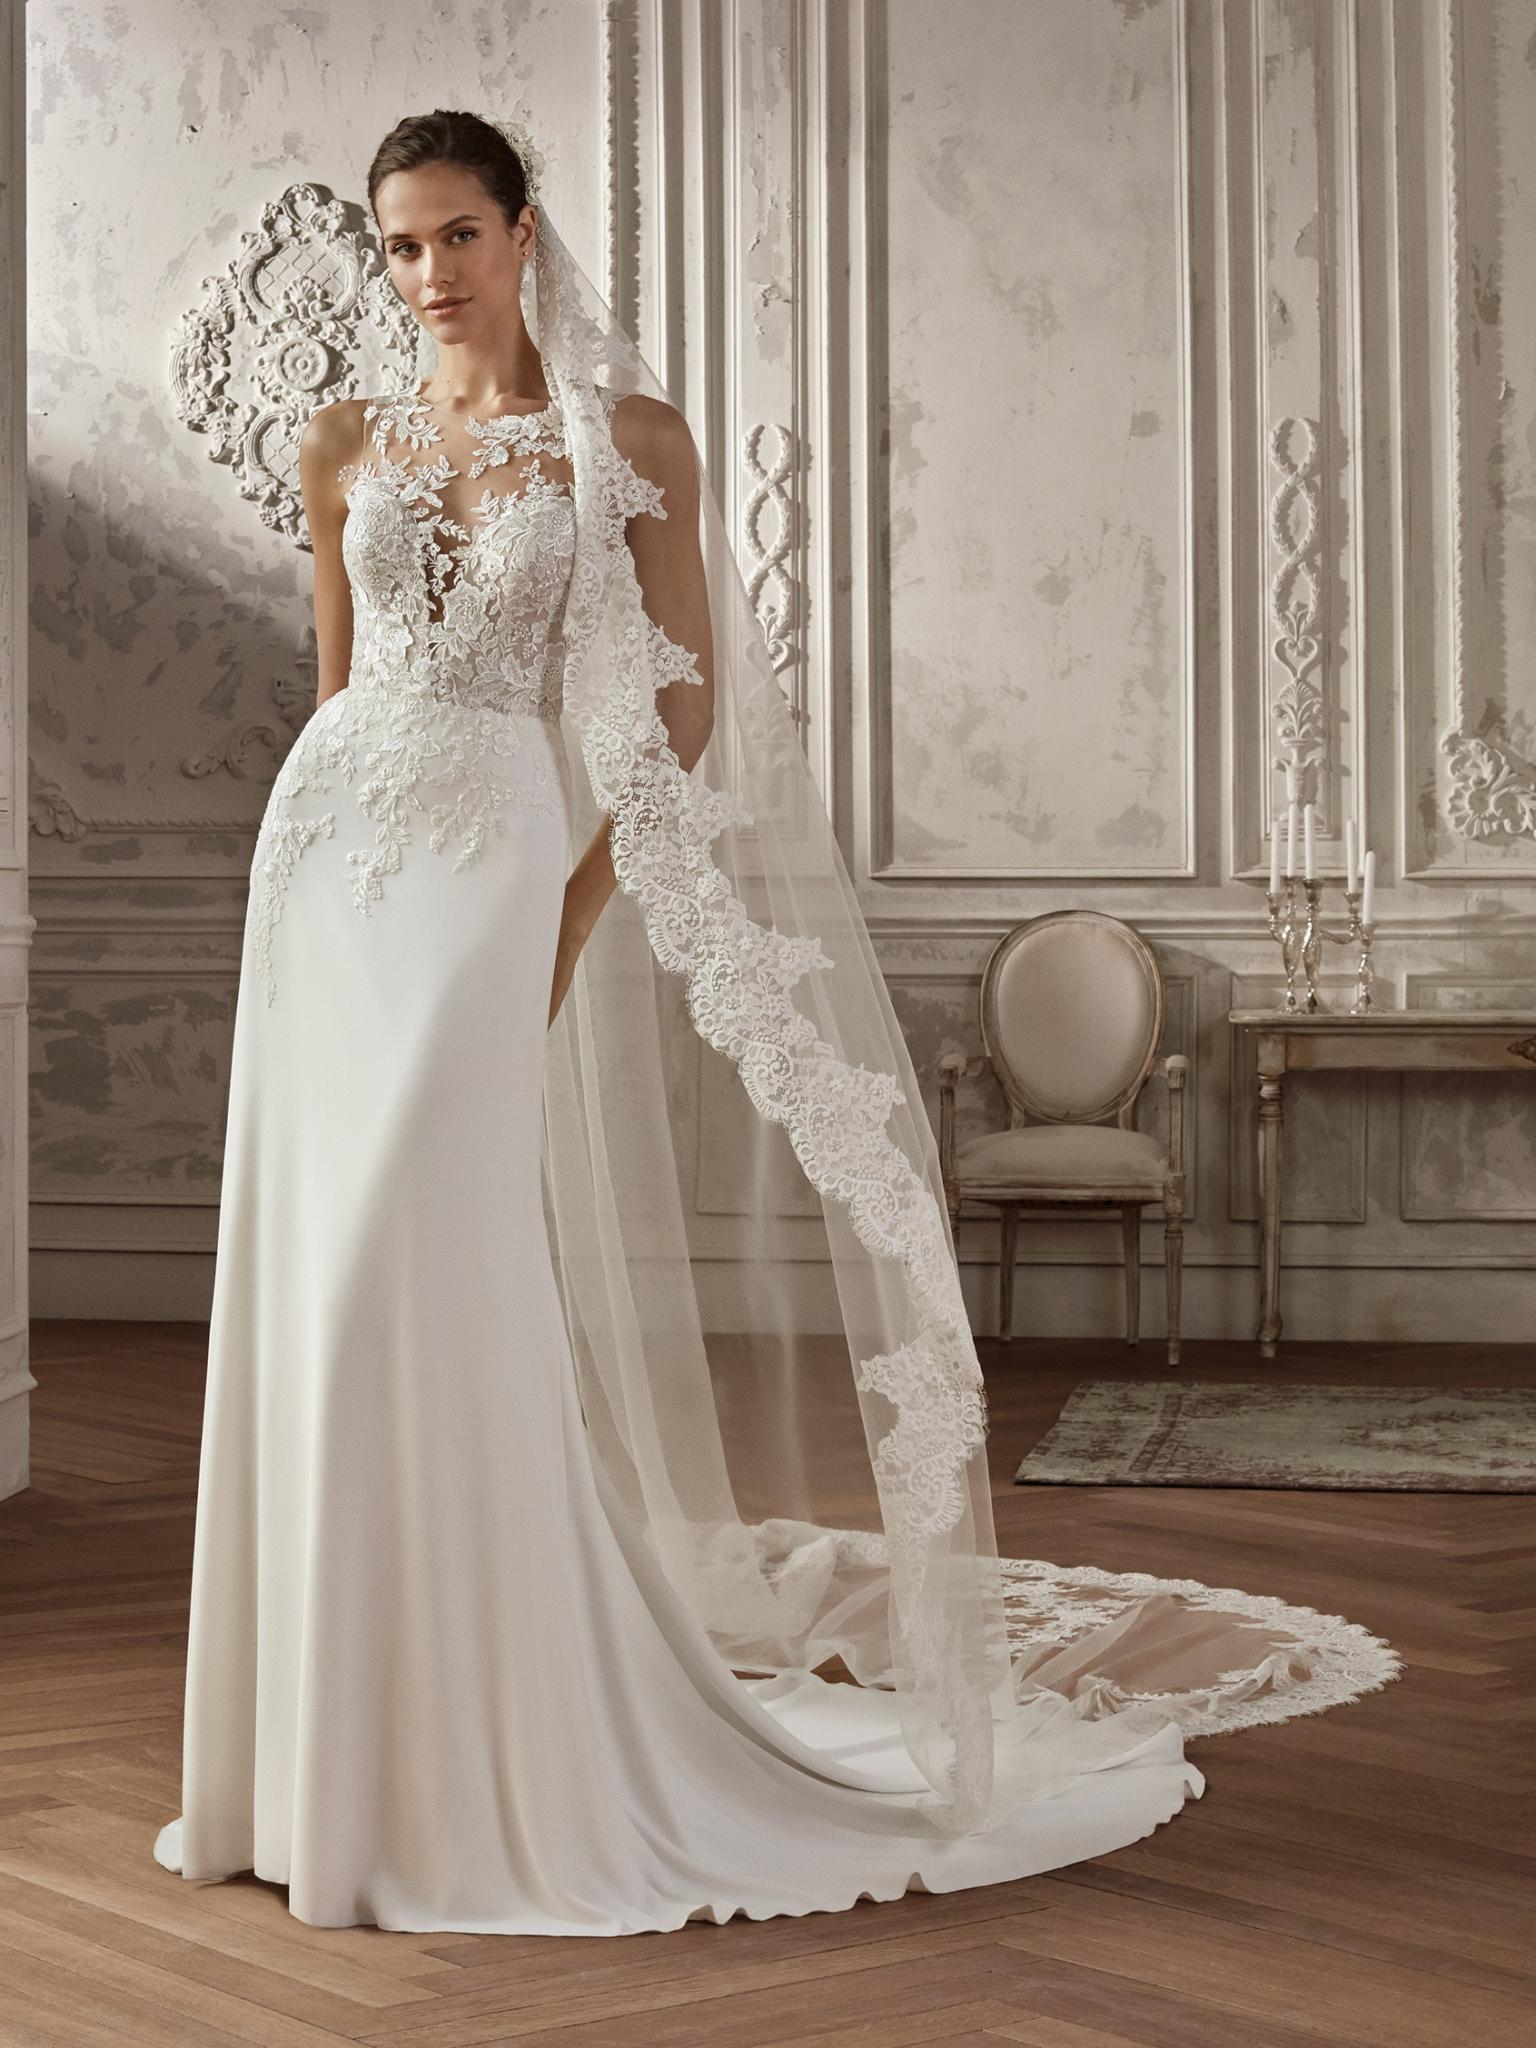 St Patrick AERYN B - Vestidos de Noiva 2019 - Bridal Collection 2019